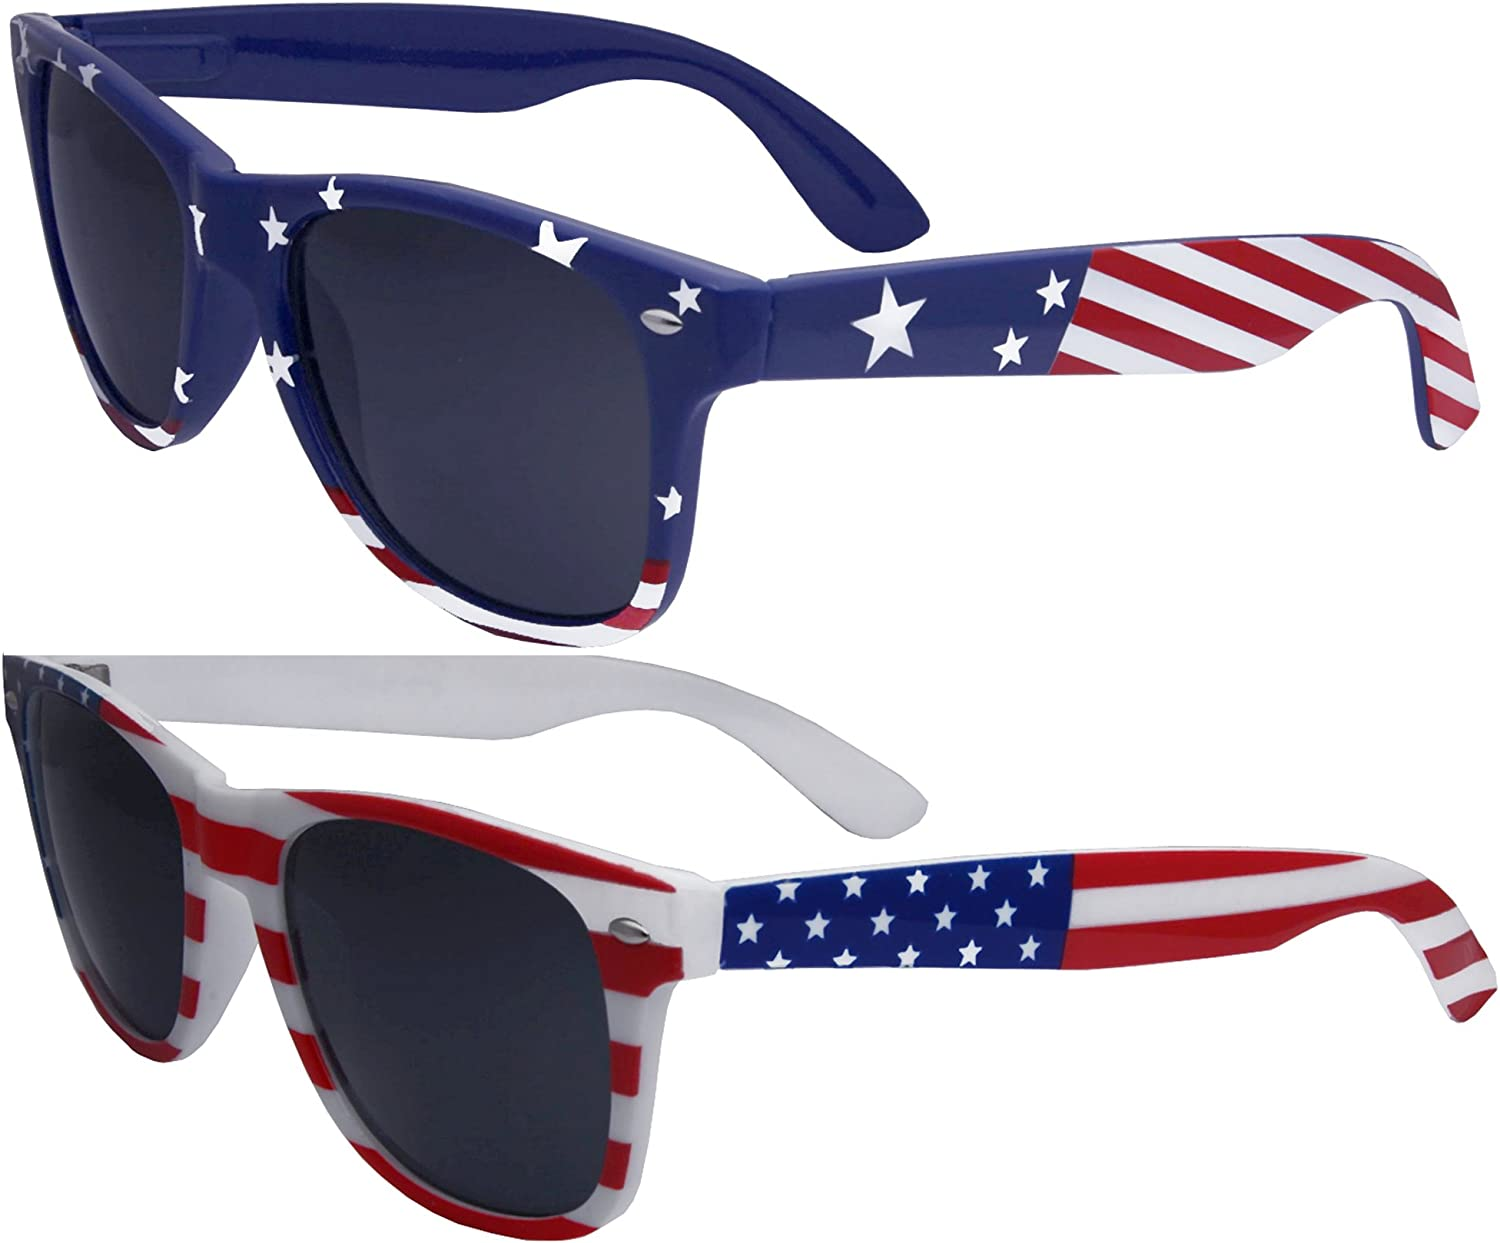 American Flag Sunglasses with case